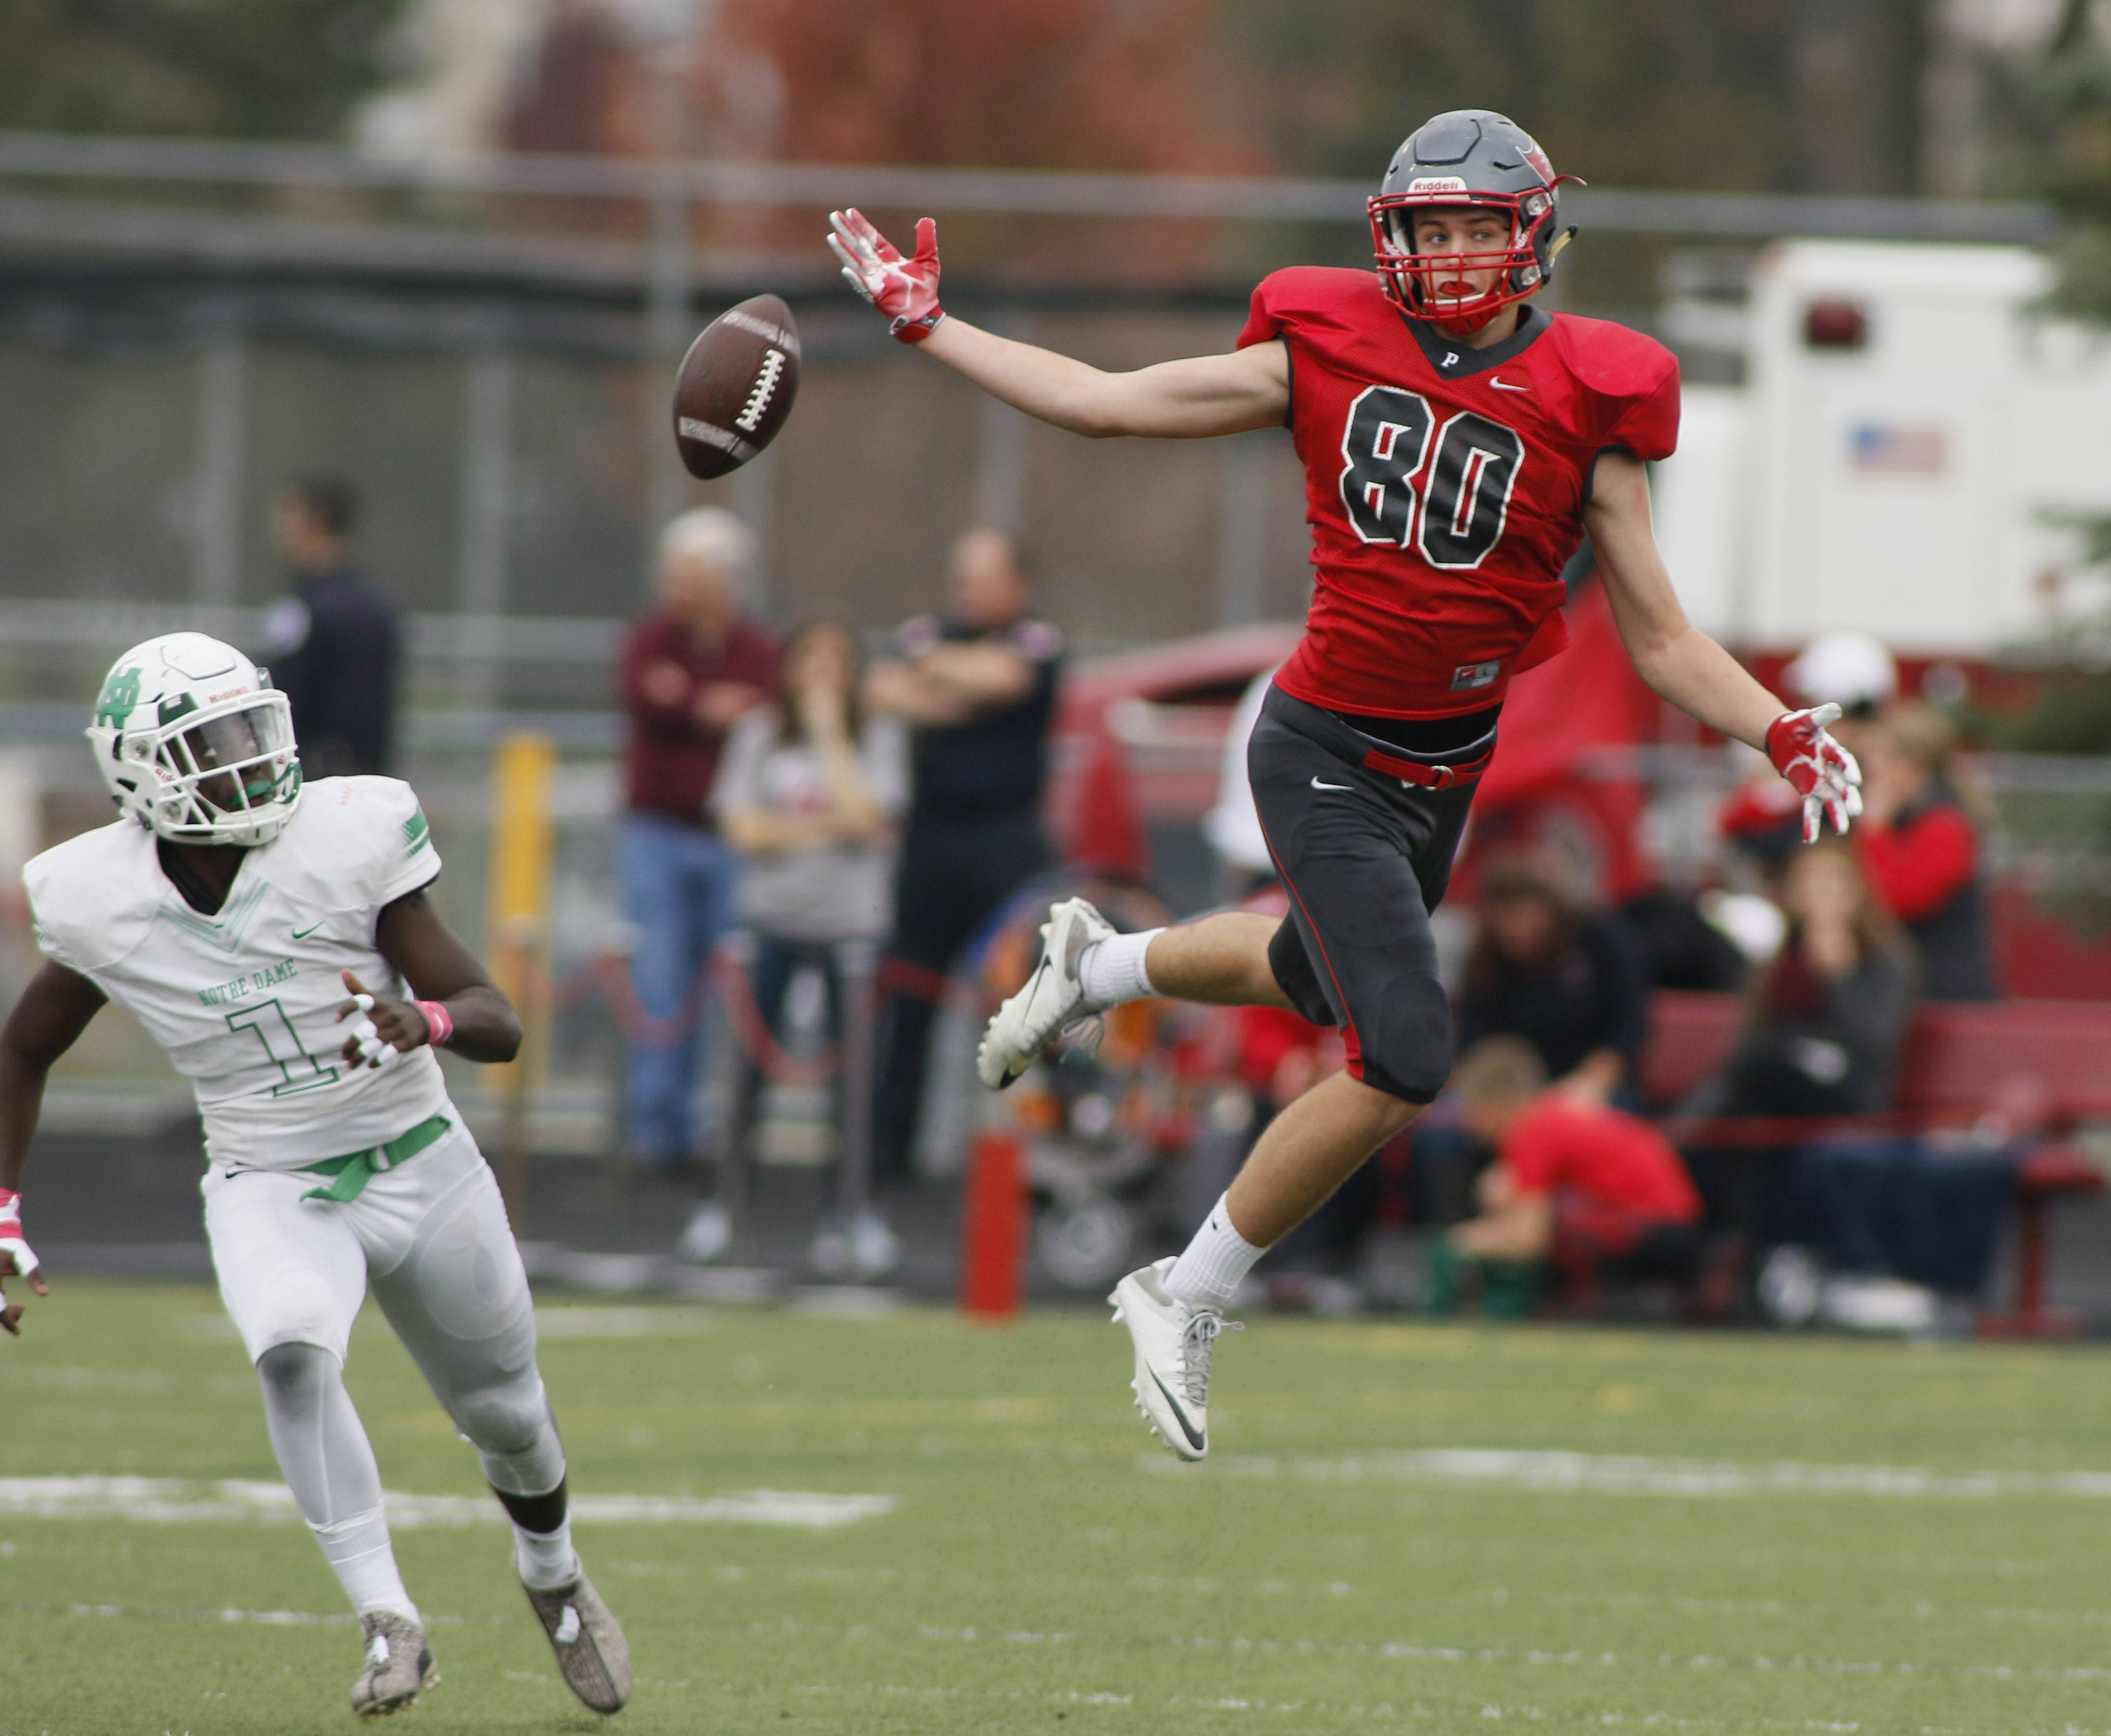 Palatine's Johnny O'Shea (80) looks to catch a pass against Notre Dame during the first round of the Class 8A football playoffs in Palatine.